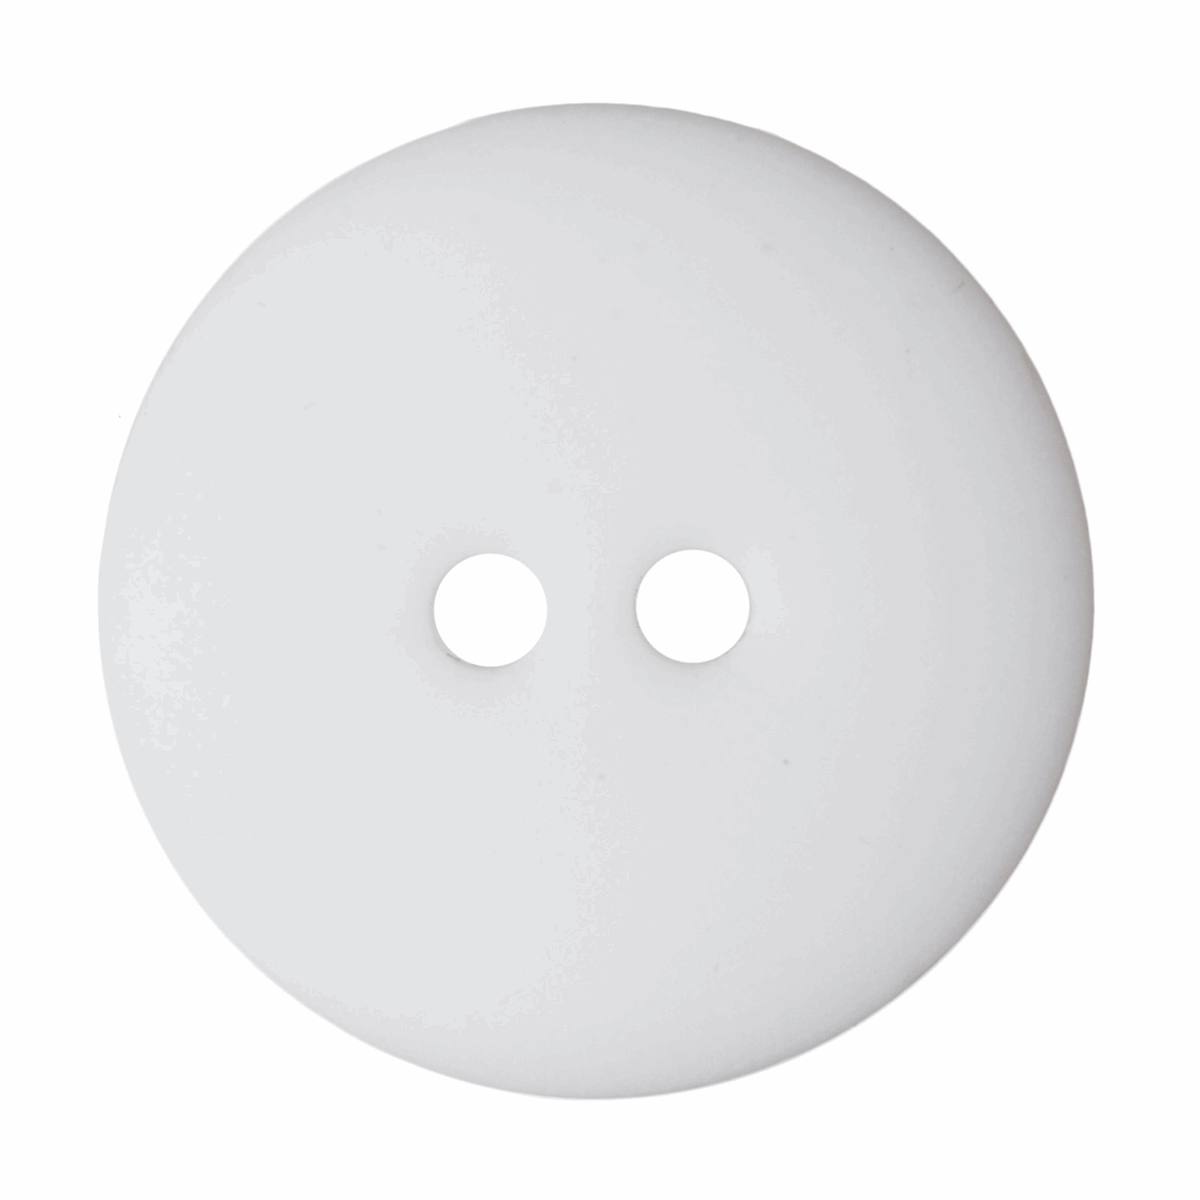 Picture of Matt Smartie Button: 32 lignes/20mm: White